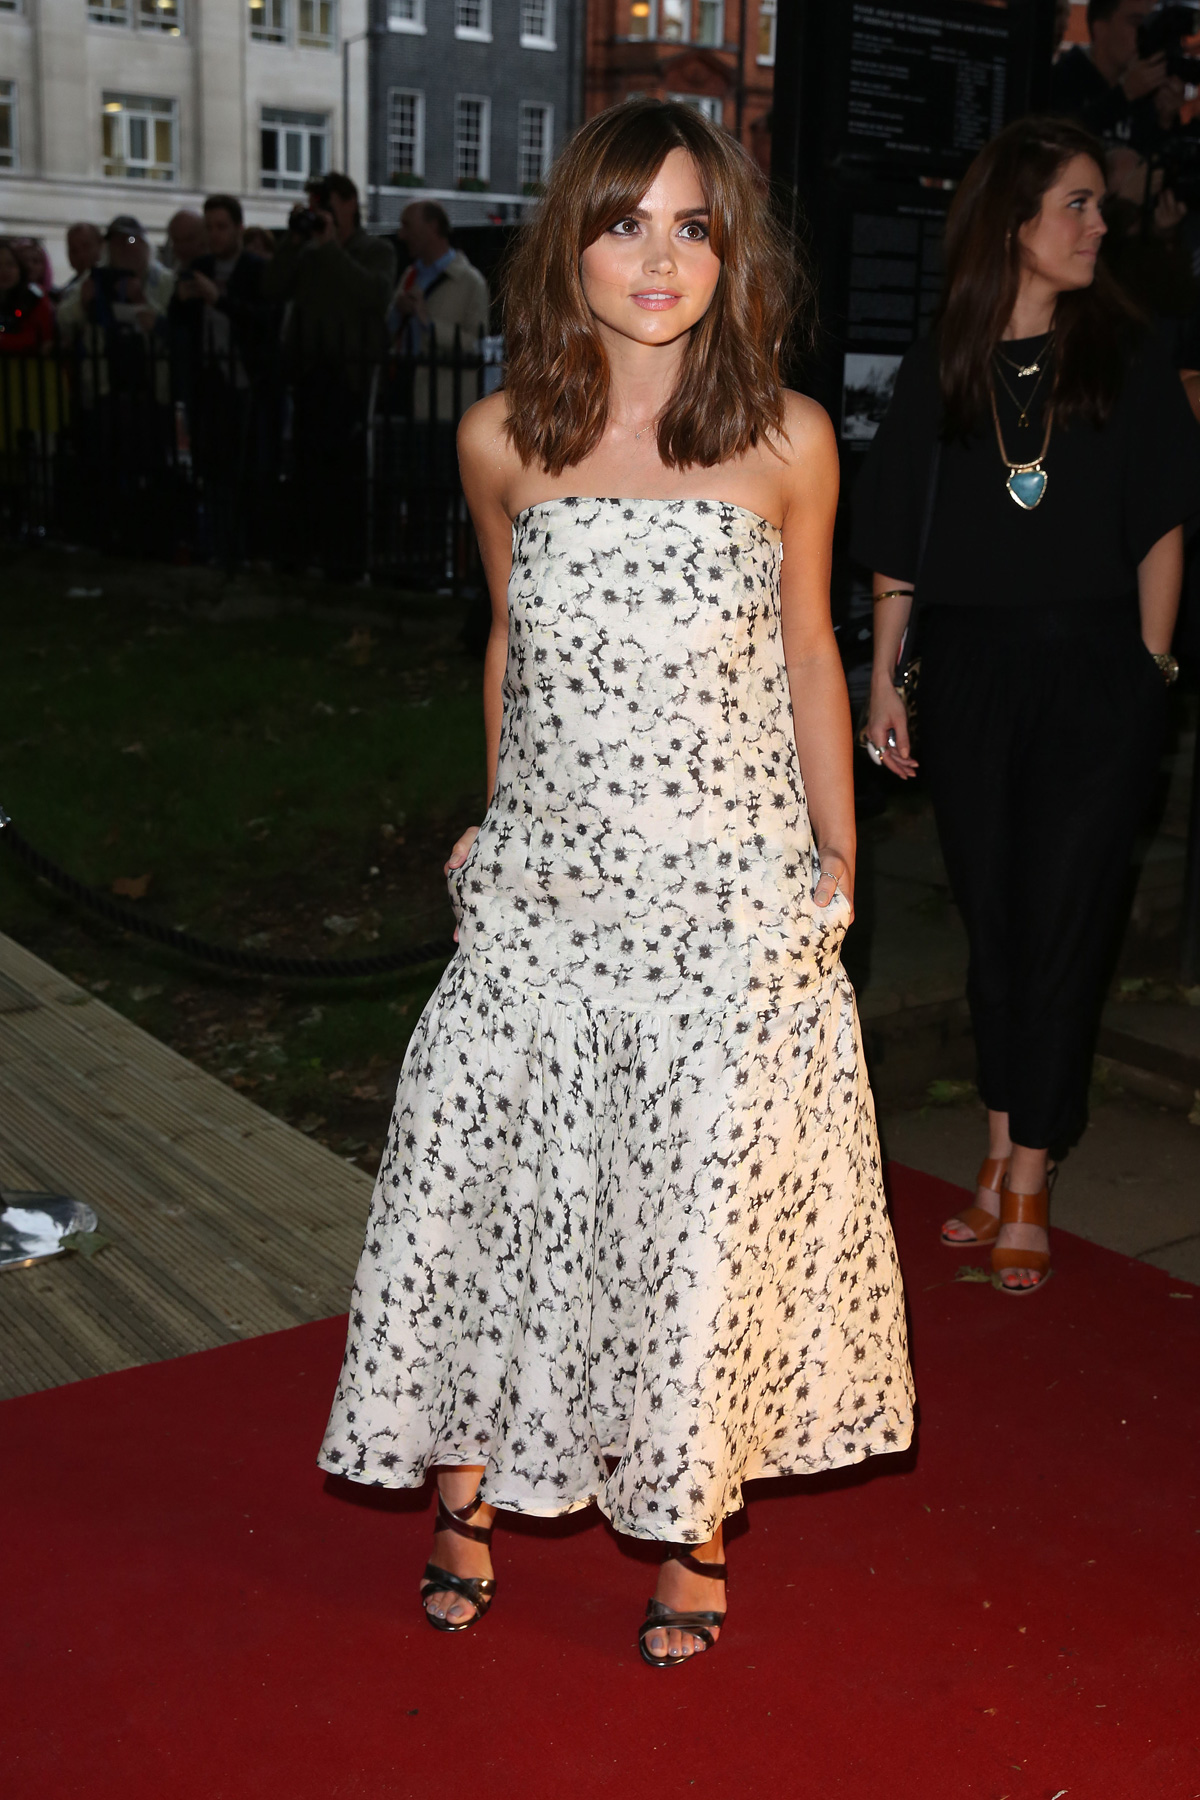 Jenna Coleman at the Glamour Women of the Year Awards